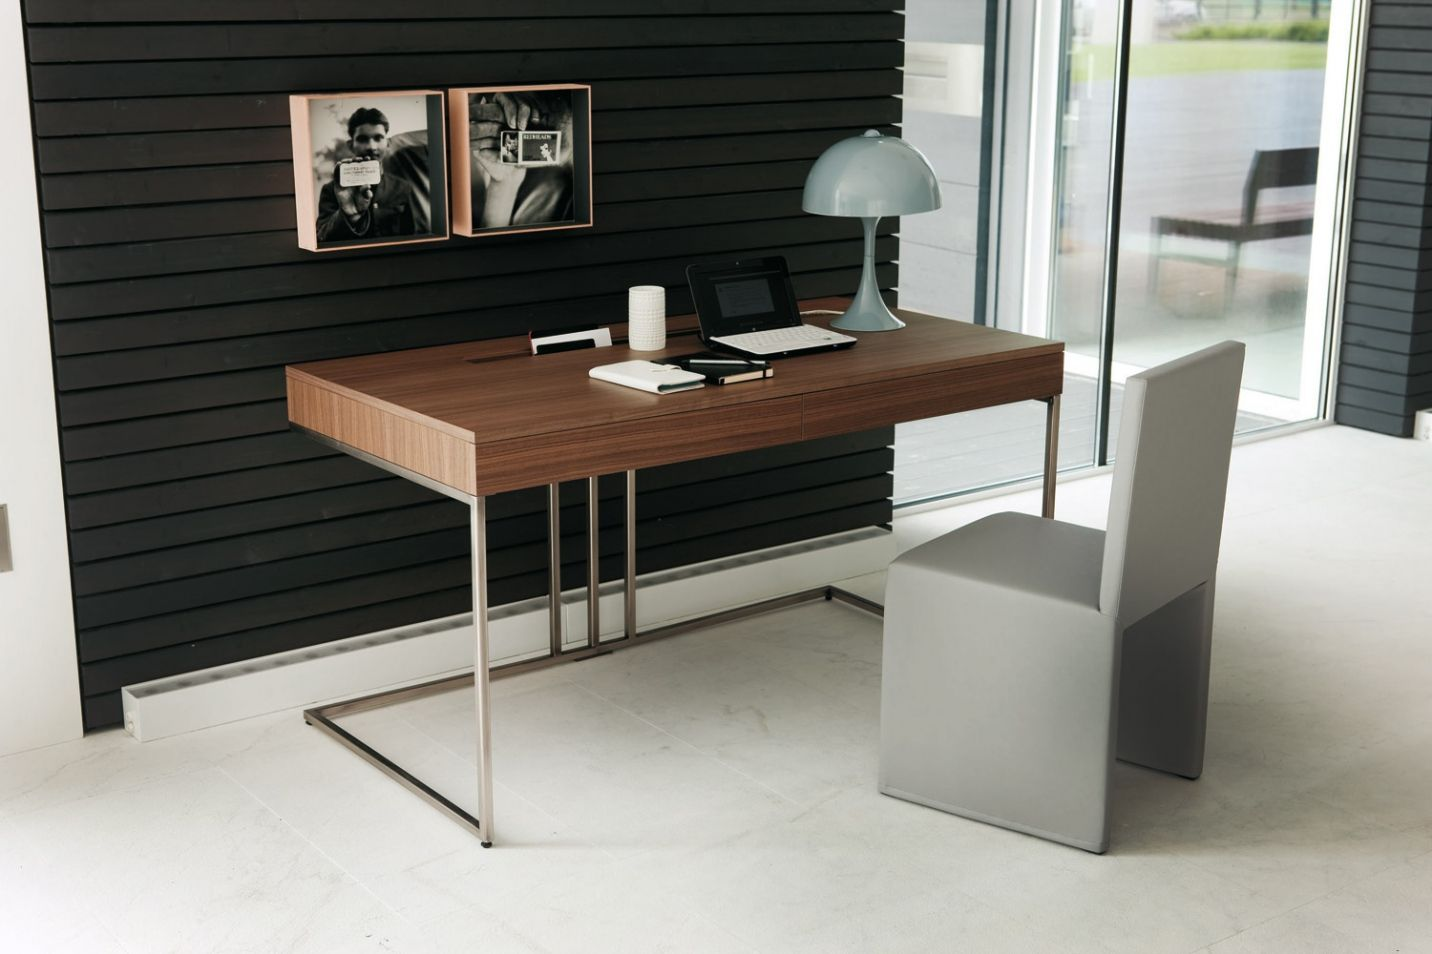 Modern Desks For Offices Home Office Furniture Set Check More At Http Michael Malarkey Com Modern Desks For Offices Interior Mebel Meja Kerja